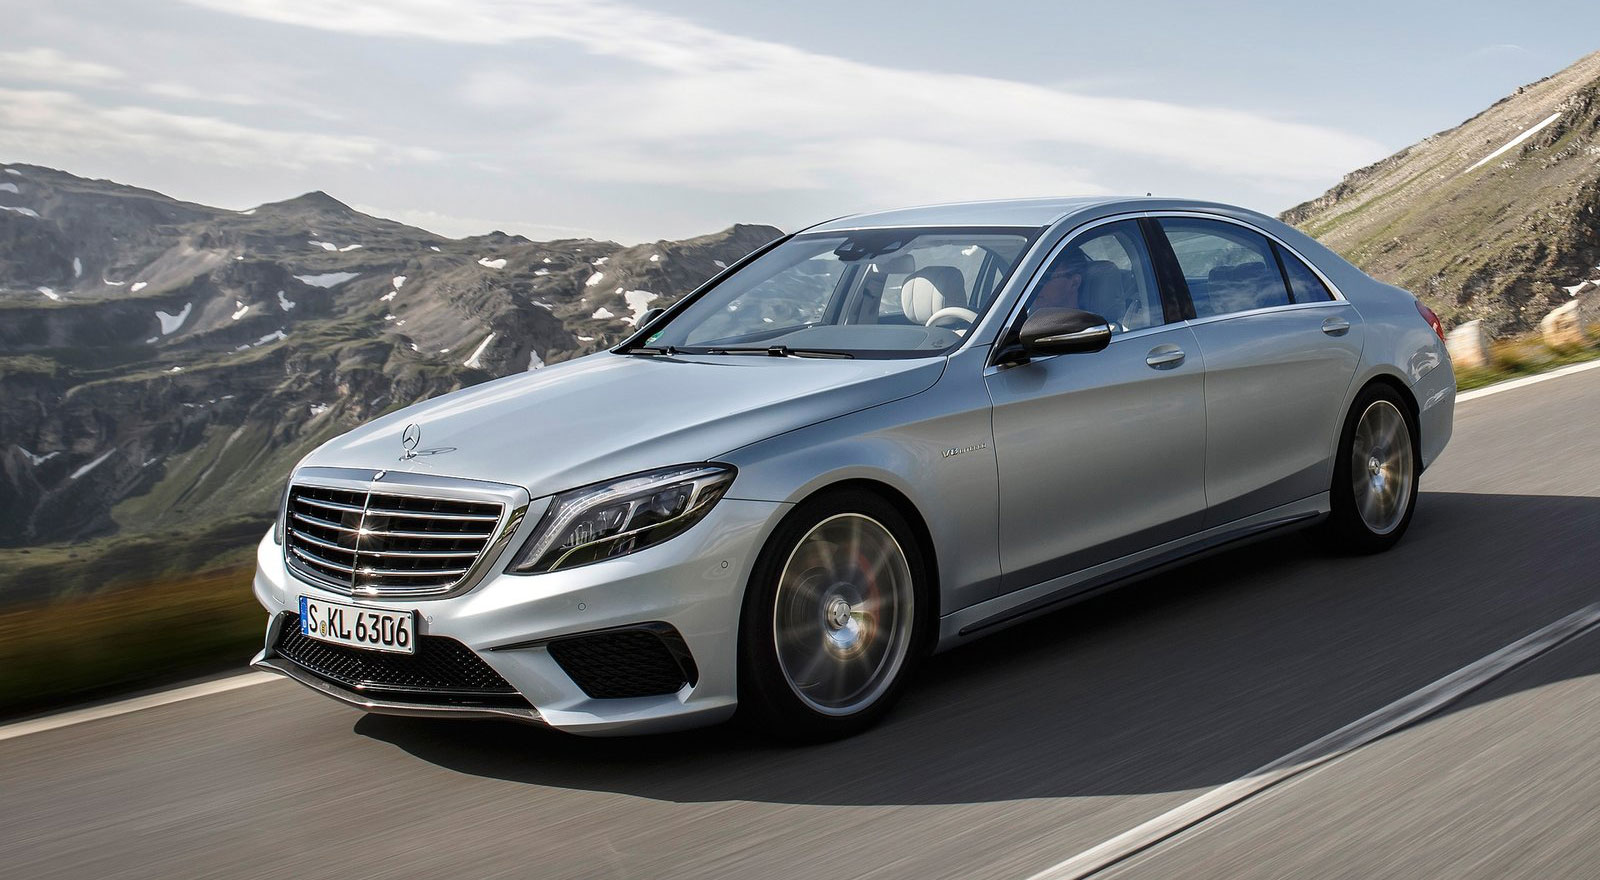 Mercedes benz s 63 amg like a boss in austria image 201939 for Mercedes benz austria